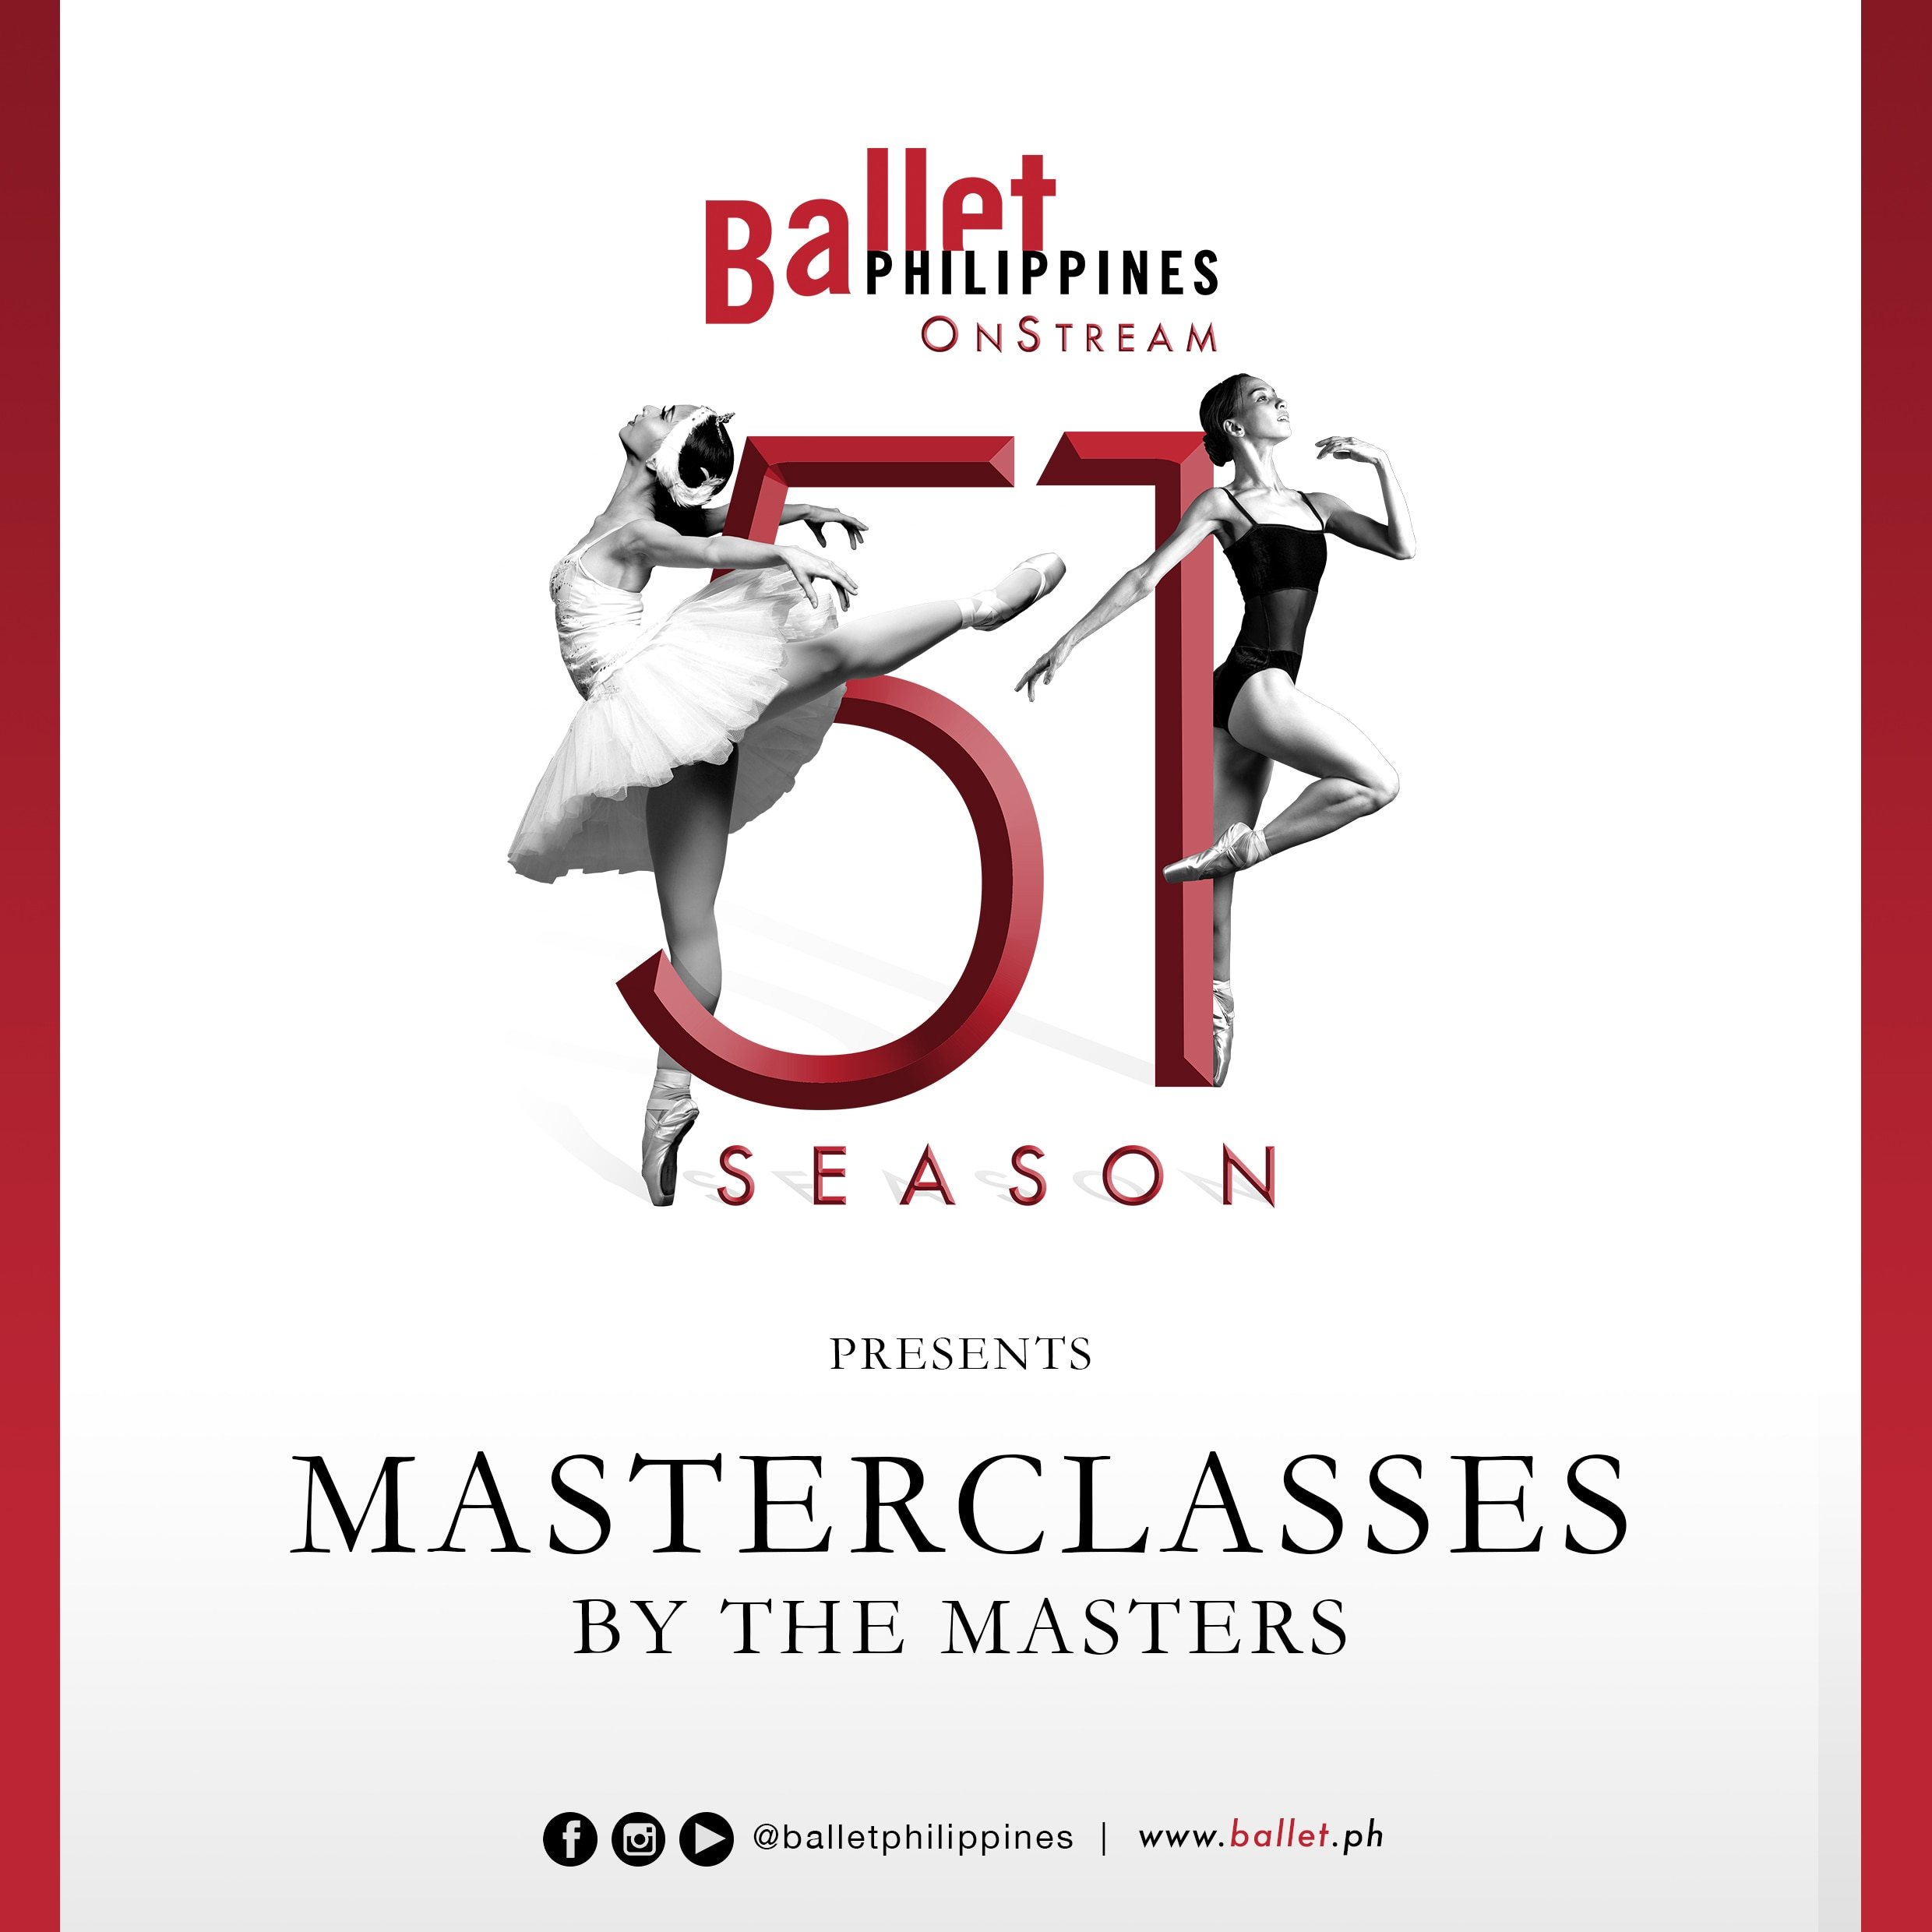 Ballet Philippines' Masterclass by the Masters